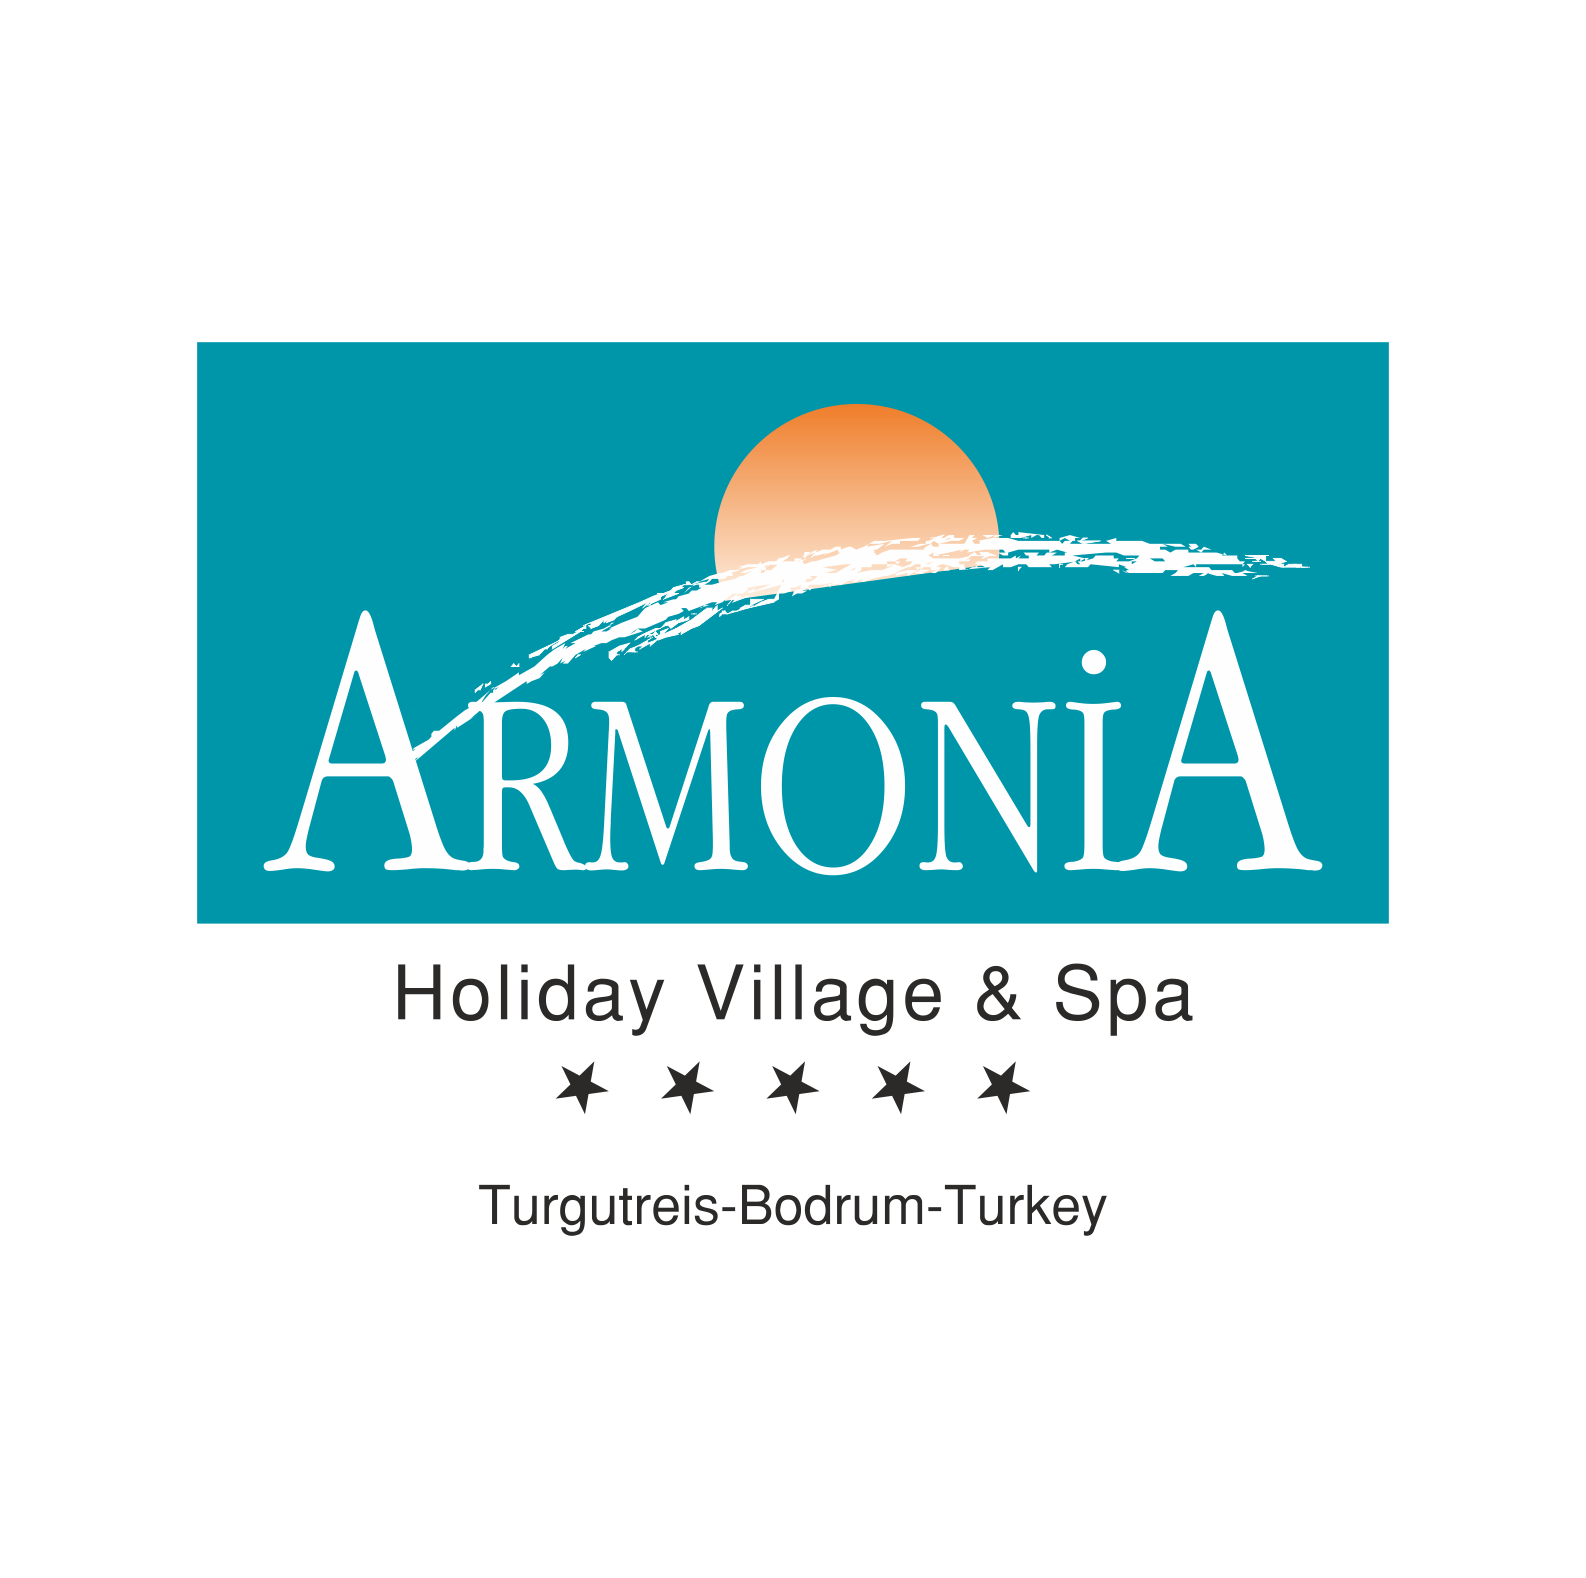 ARMONİA HOLİDAY VILLAGE